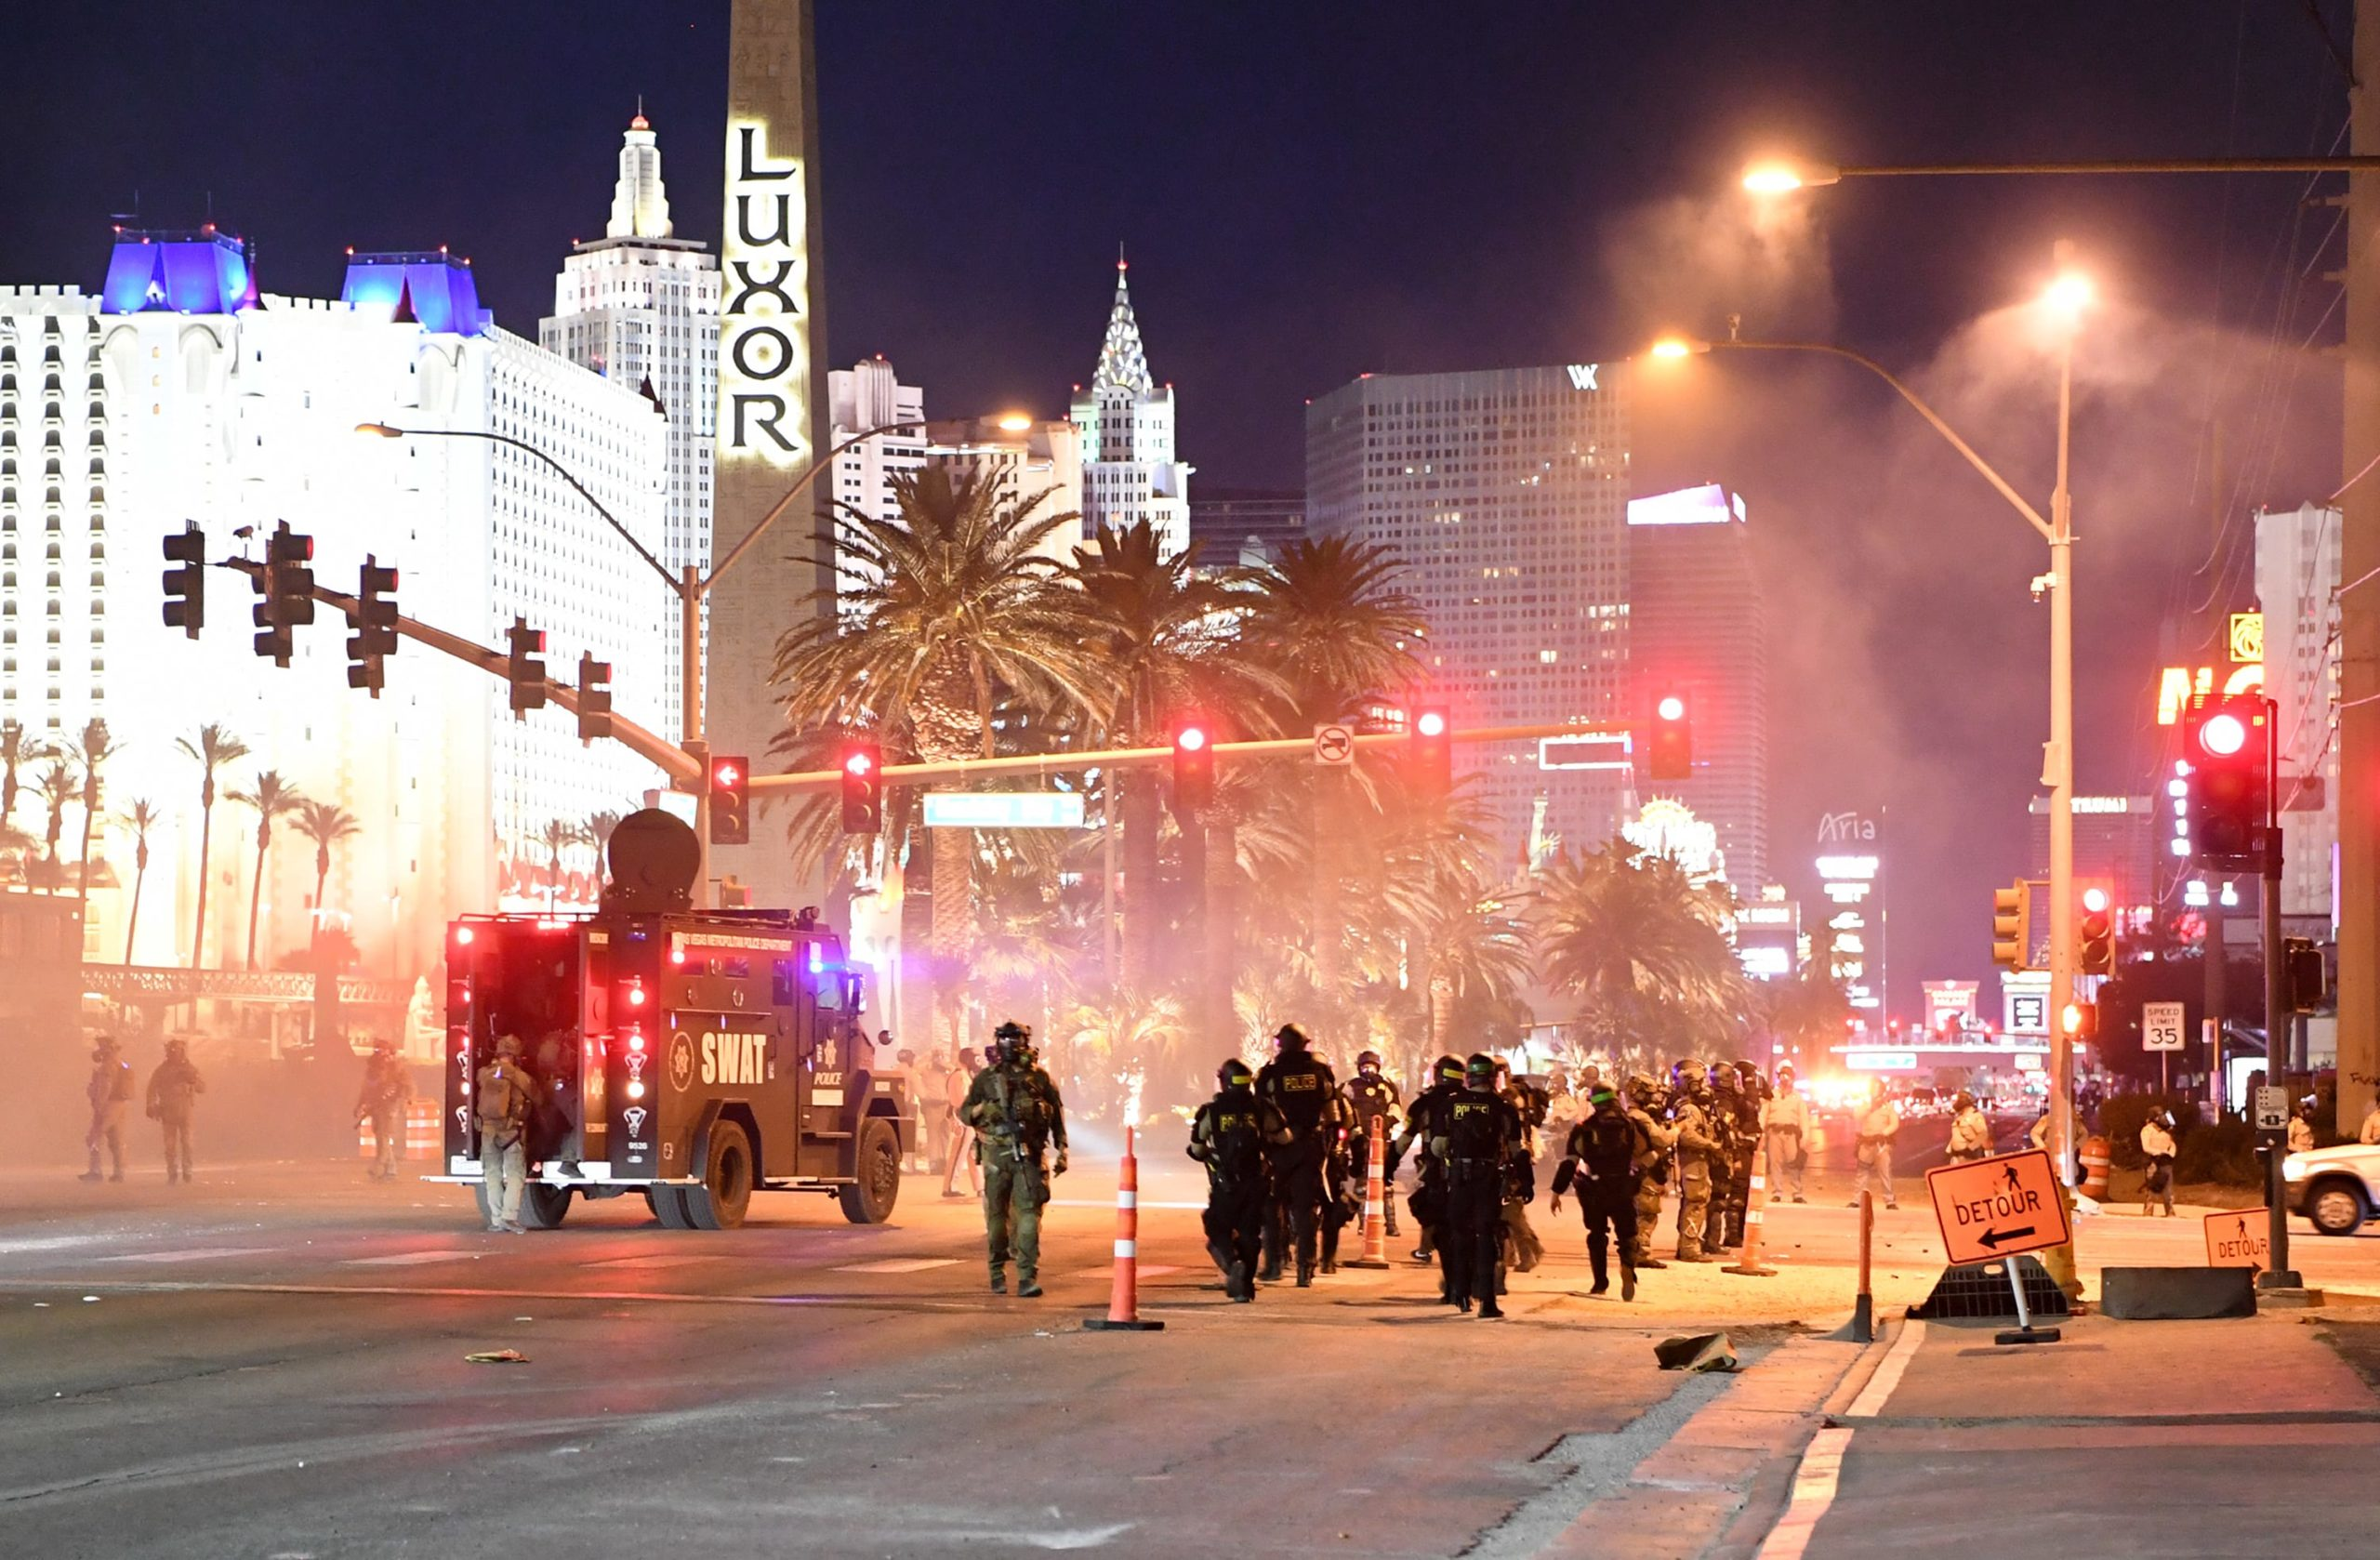 Protests might derail an anticipated robust reopening for Las Vegas casinos